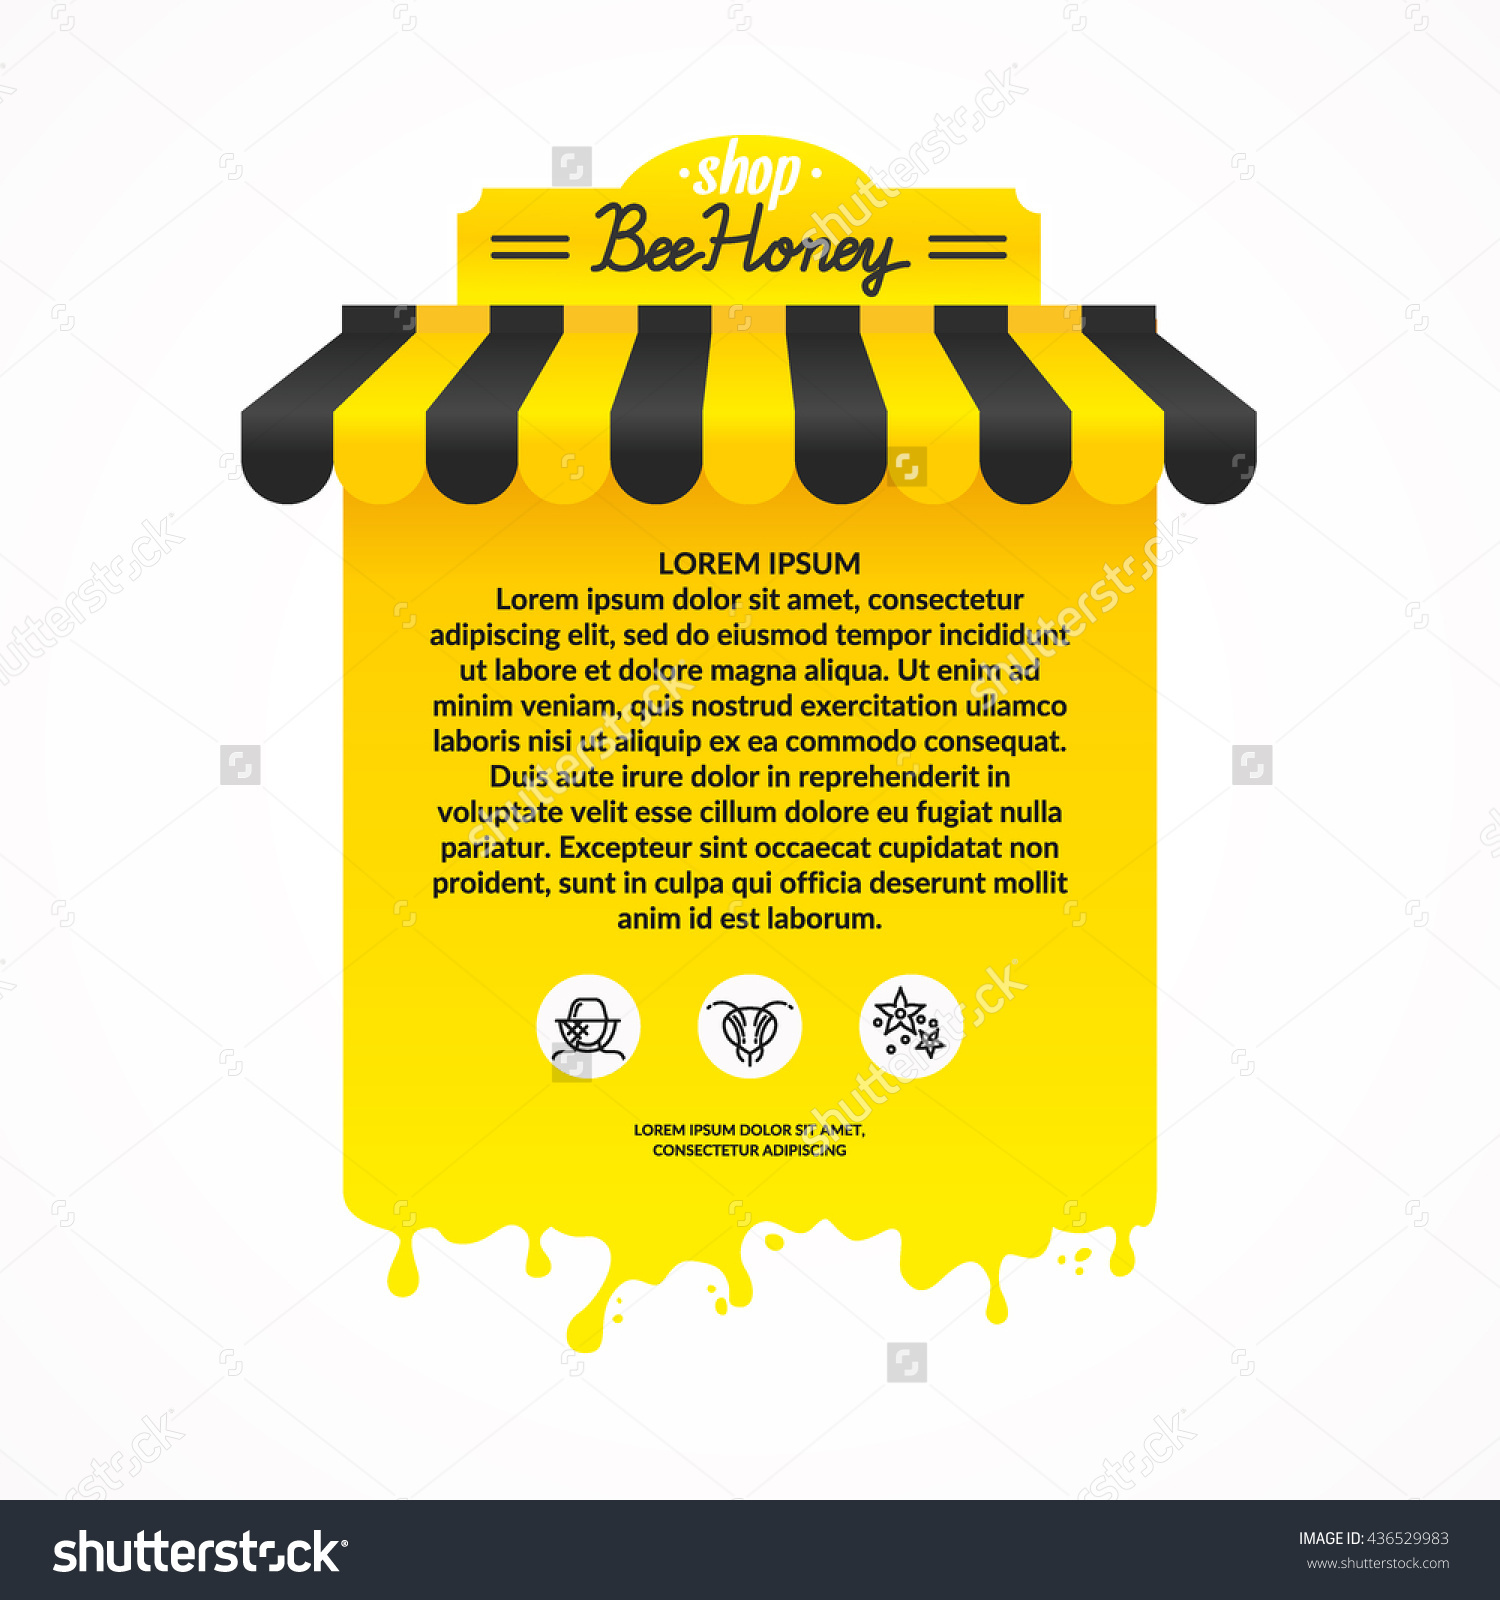 Illustration Stall Street Trading Products Beekeeping Stock Vector.